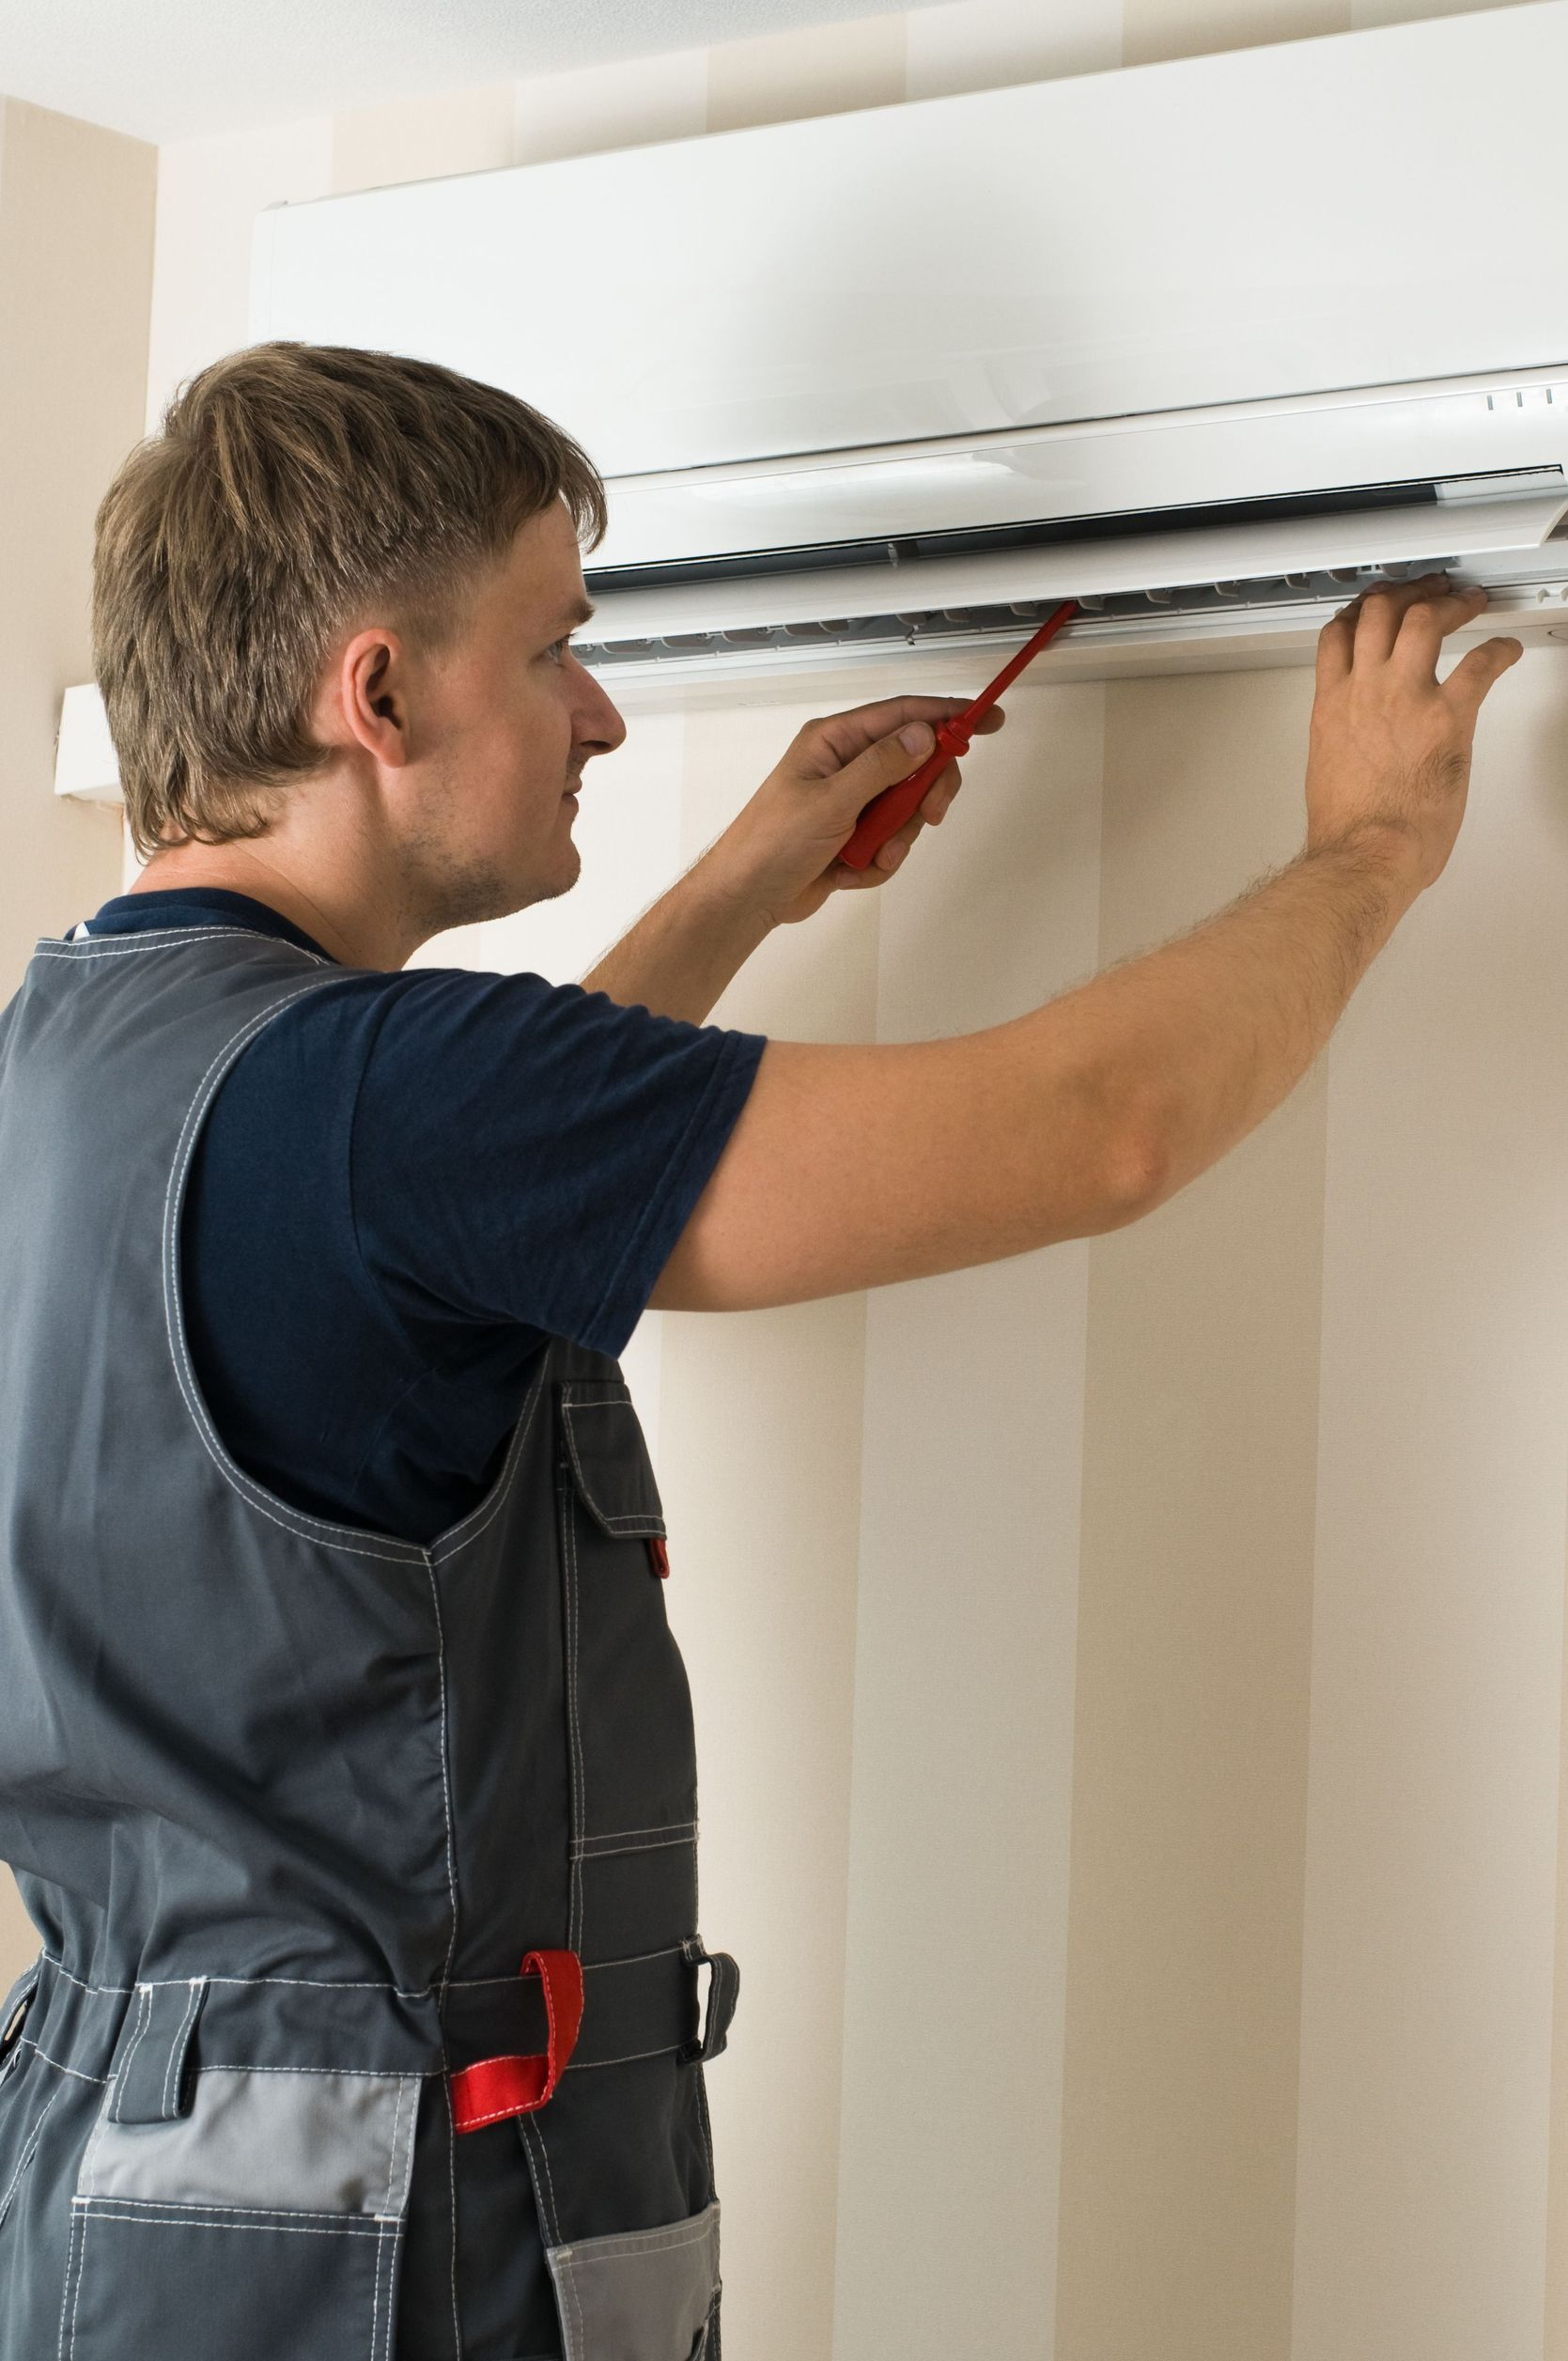 Use a Highly Trained Technician to Assist With Boiler Repair in Chicago